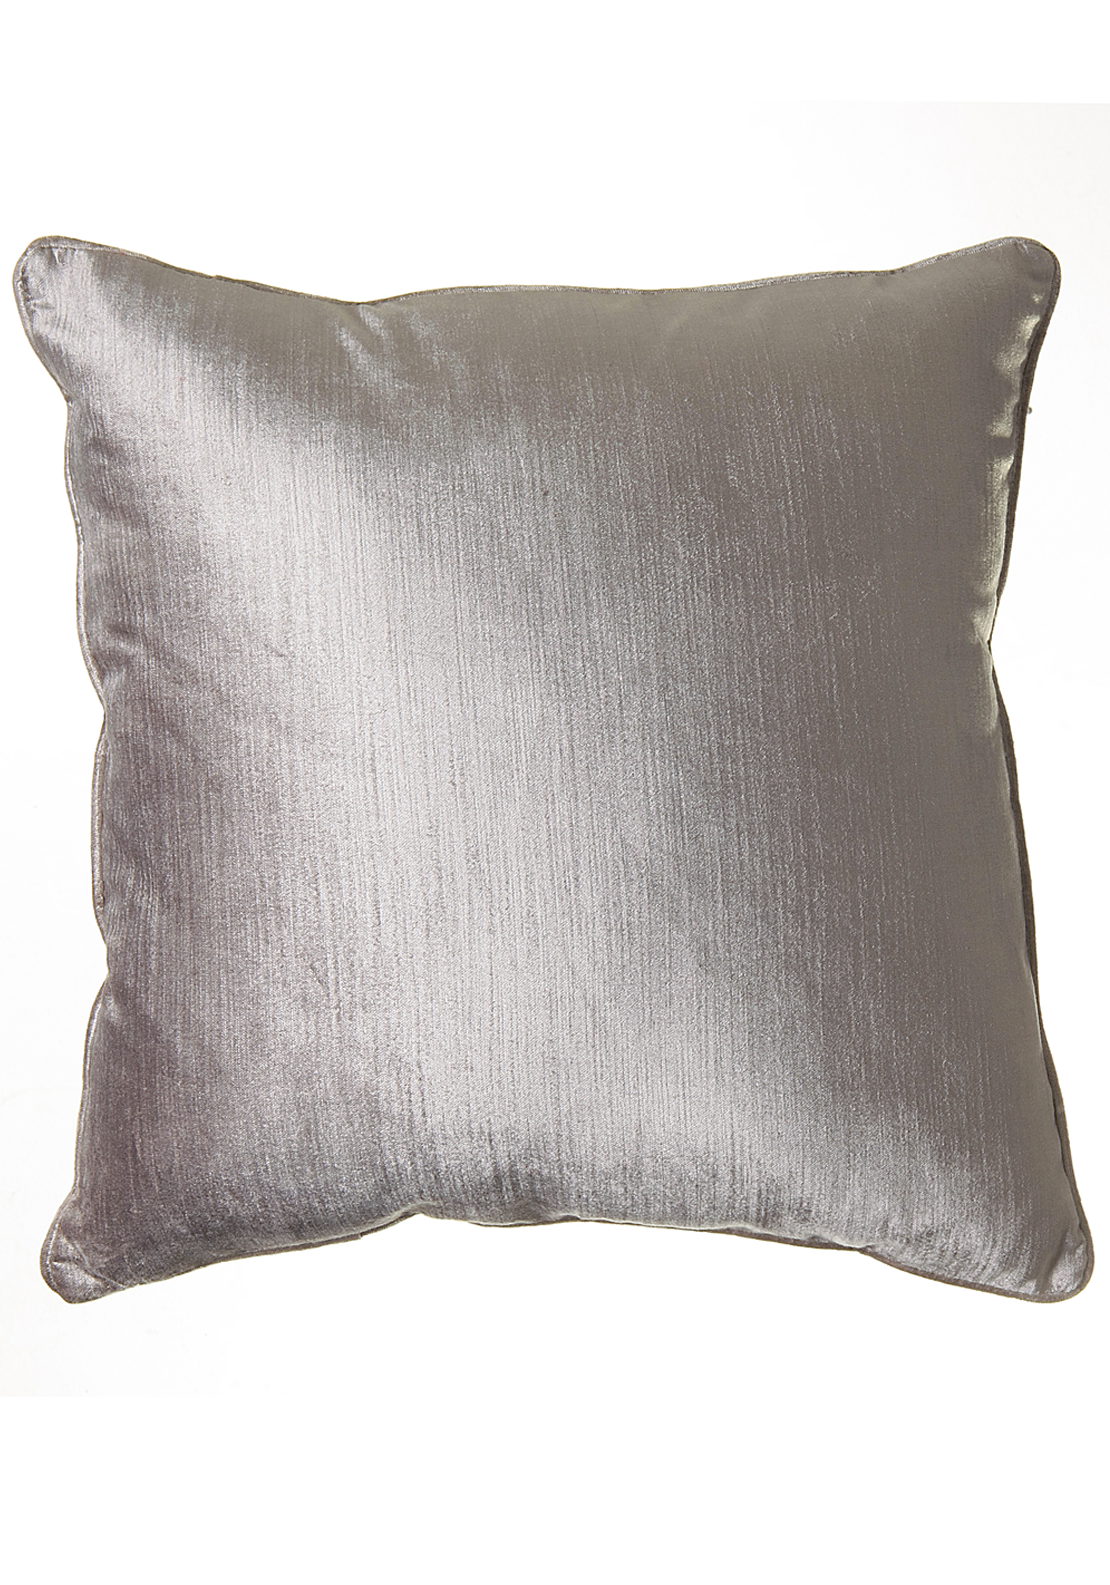 Scatterbox Velvet Sheen Duo Coloured Cushion, 45 x 45cm Grey